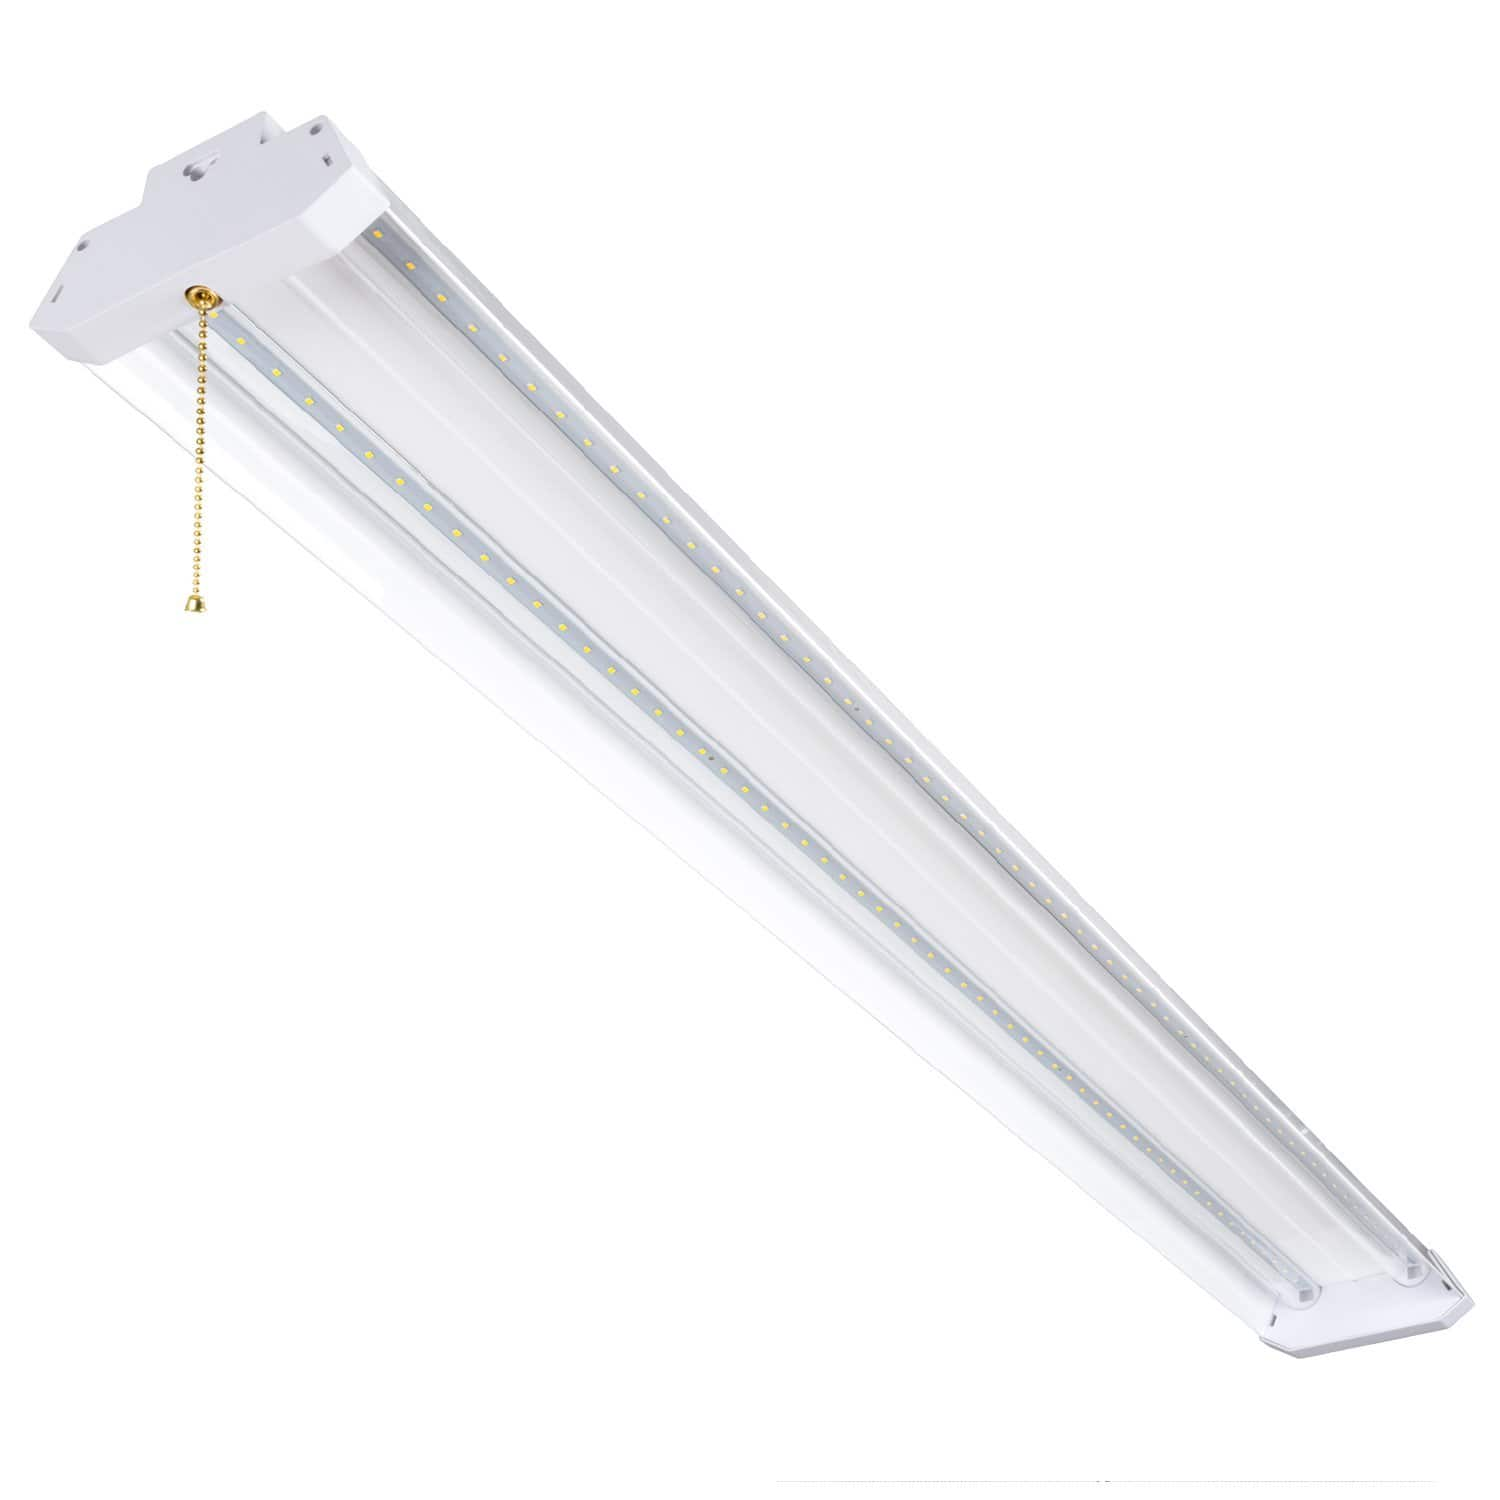 Sam's Club Members: Honeywell 4' LED Linkable Shop Light